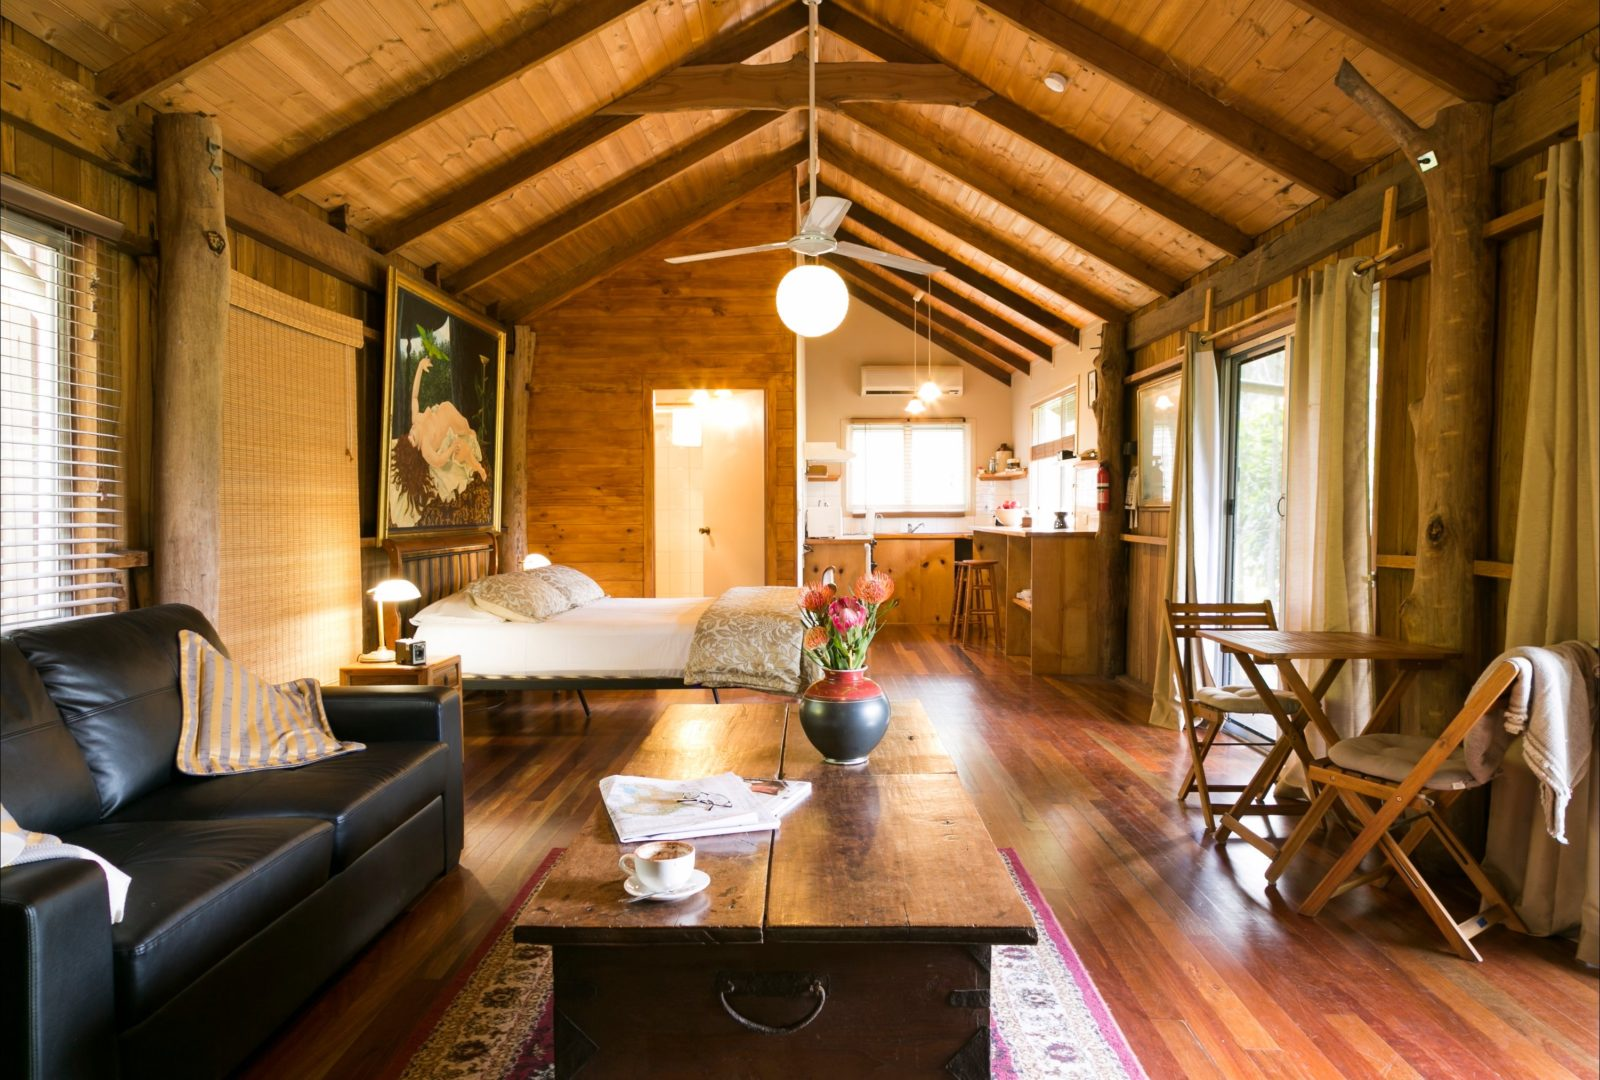 Romantic couples accommodation in the studio-style Log Cabin.